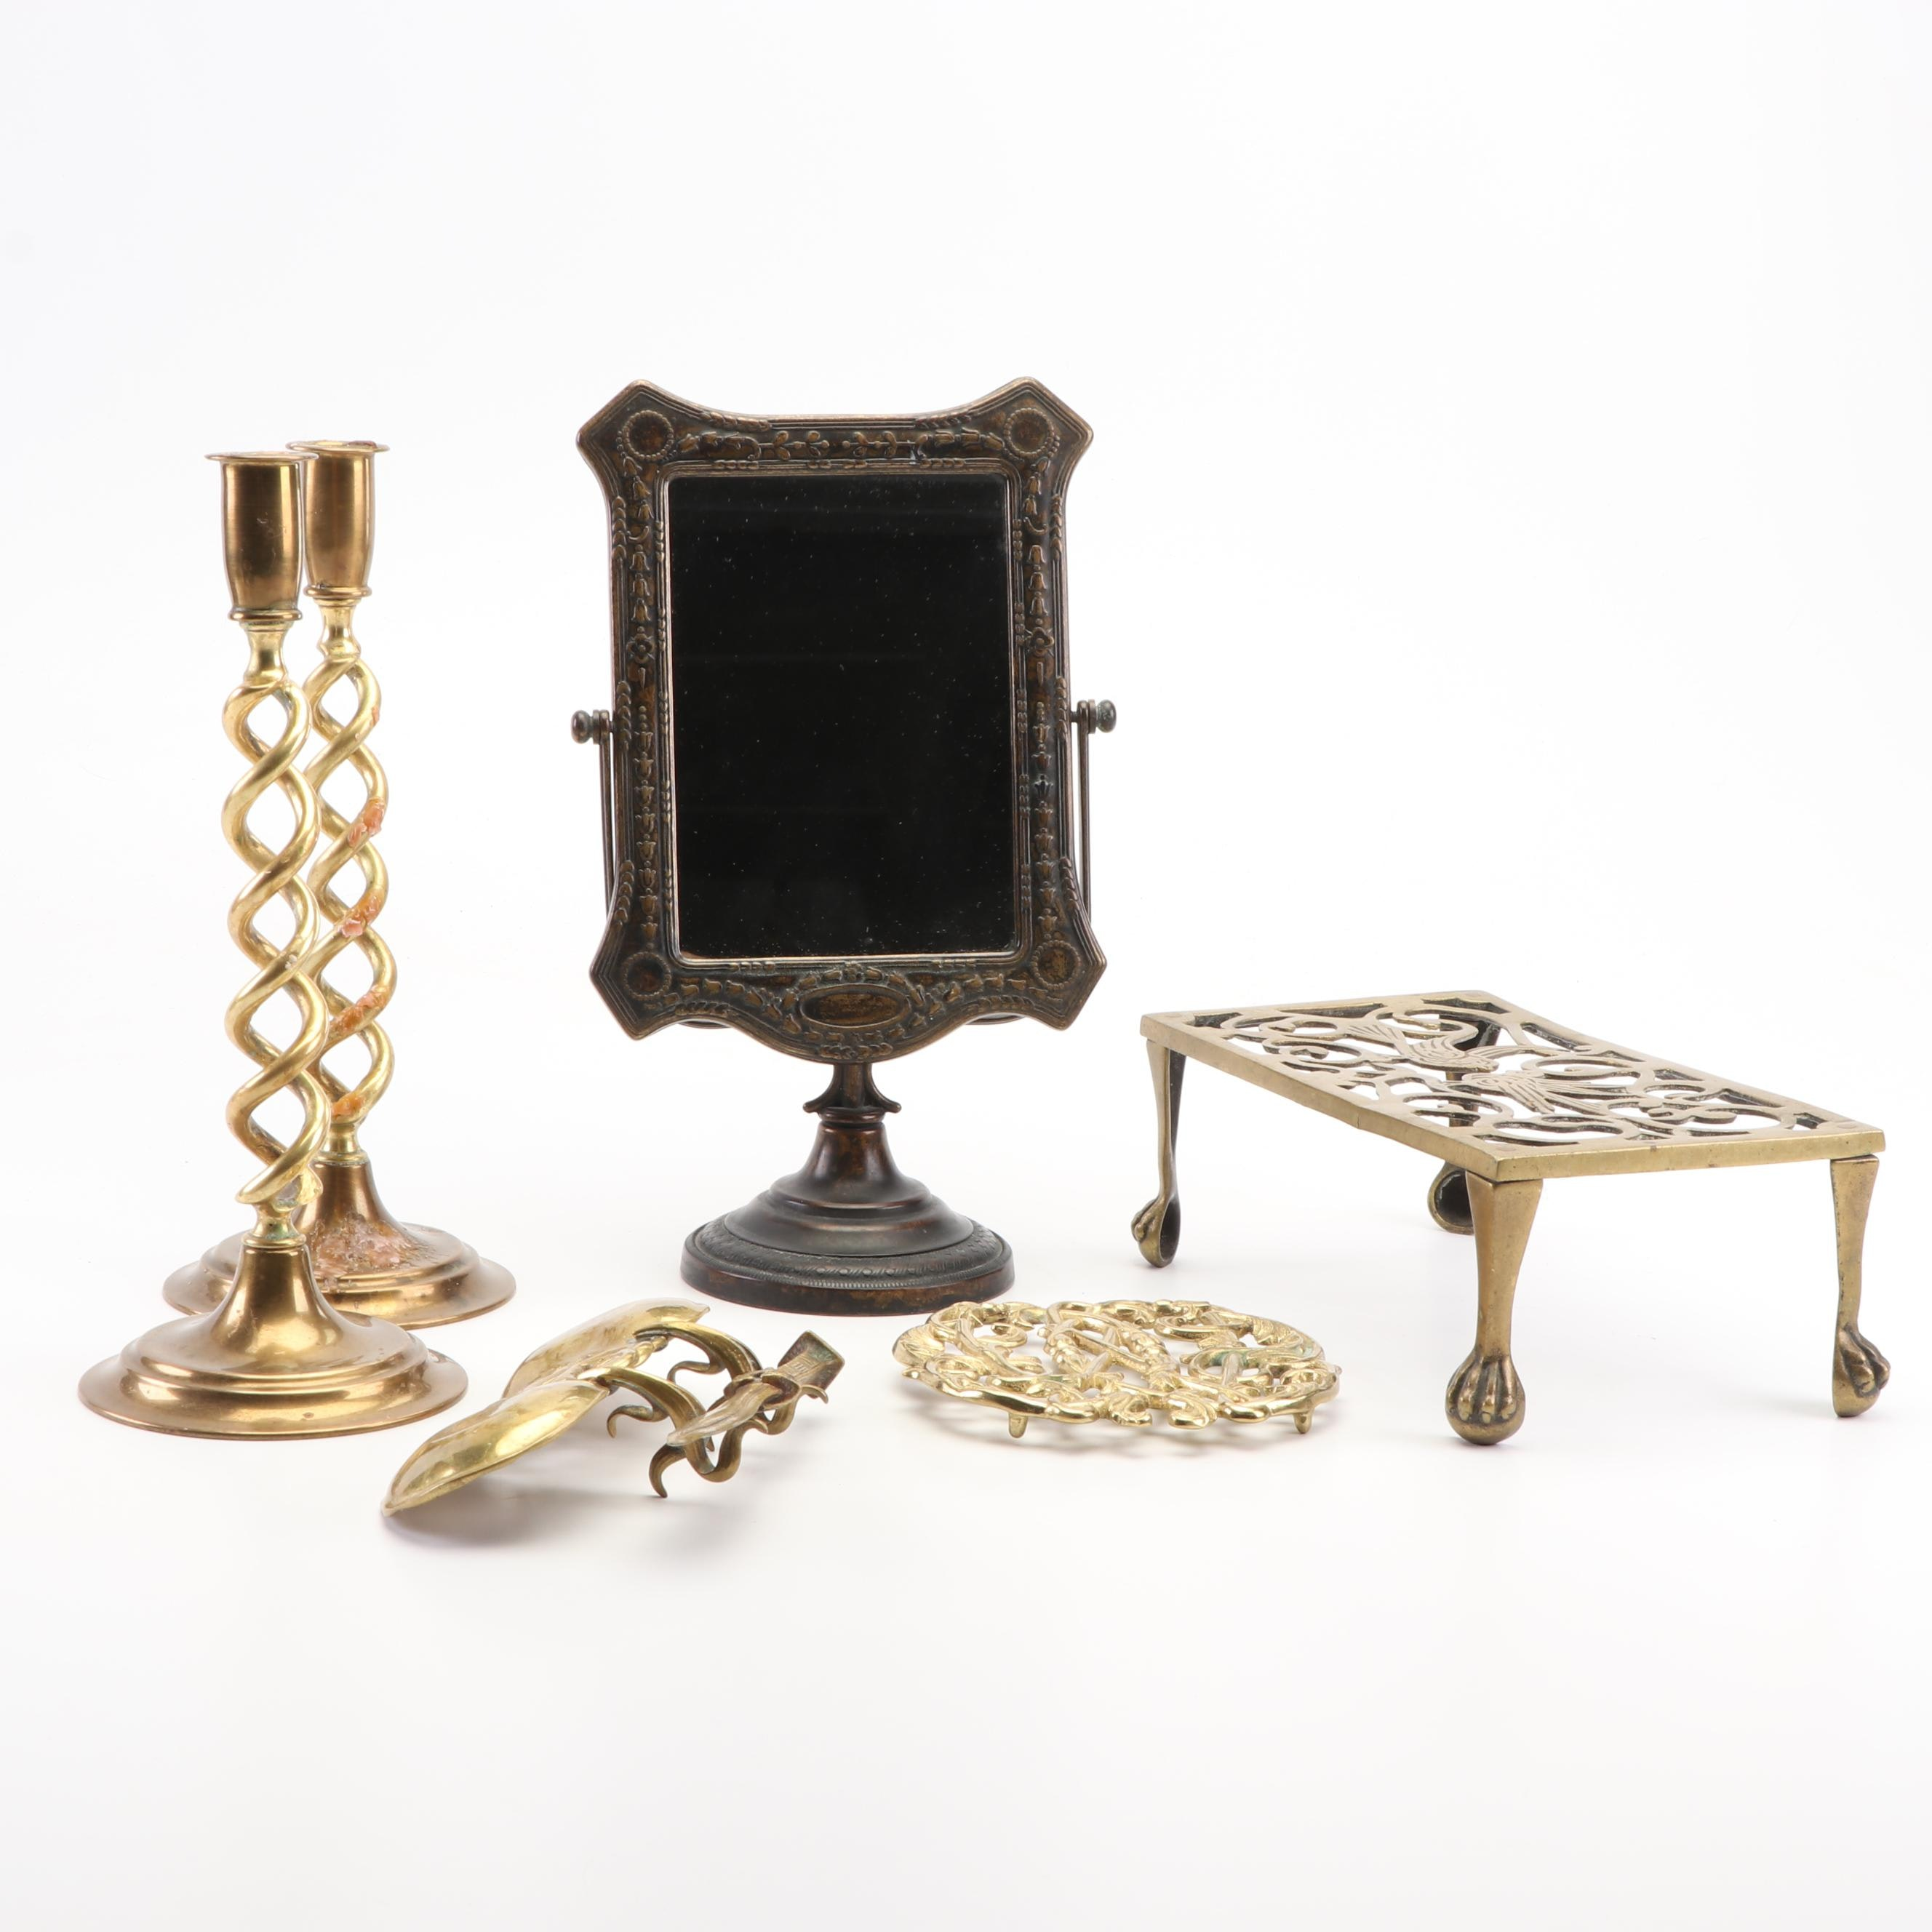 Candle Holders, Letter Opener, Mirror, and Col Williamsburg Cypher Trivet, 1950